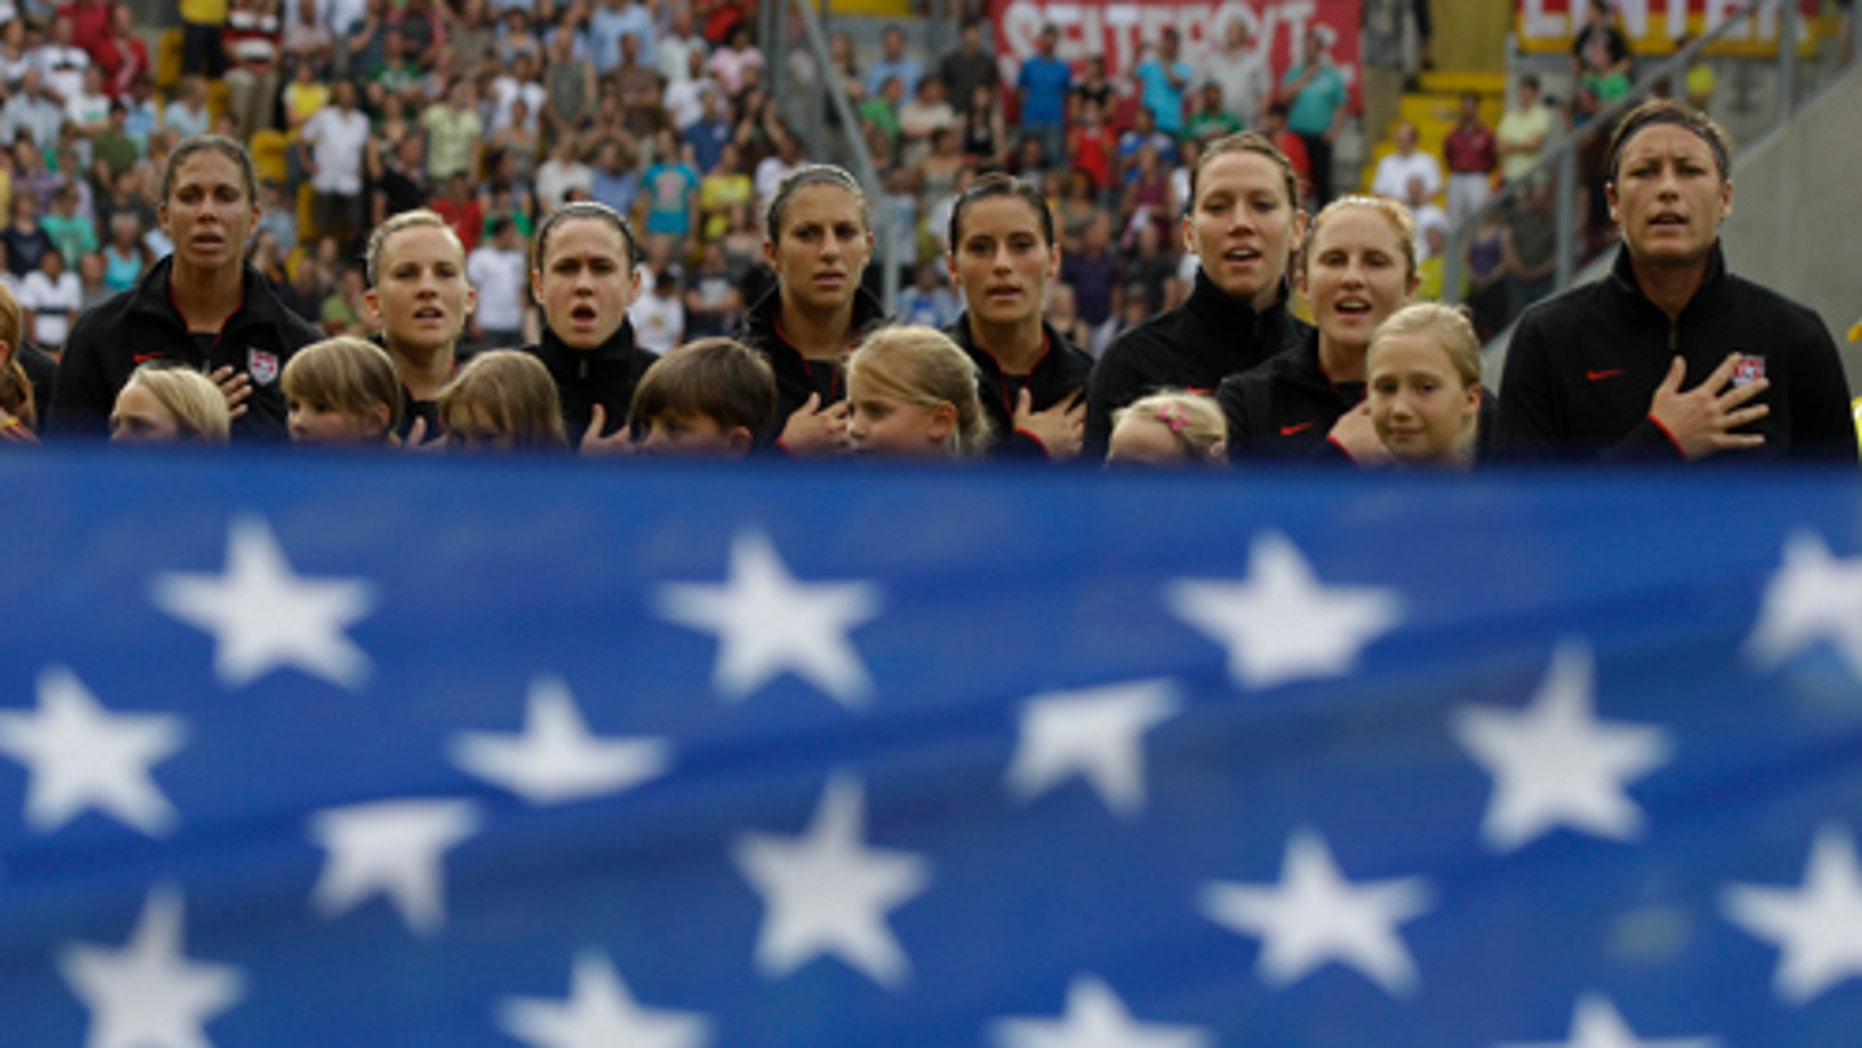 US players sing the nationa anthem prior to the quarterfinal match between Brazil and the United States at the Womens Soccer World Cup in Dresden, Germany, Sunday, July 10, 2011. (AP Photo/Marcio Jose Sanchez)